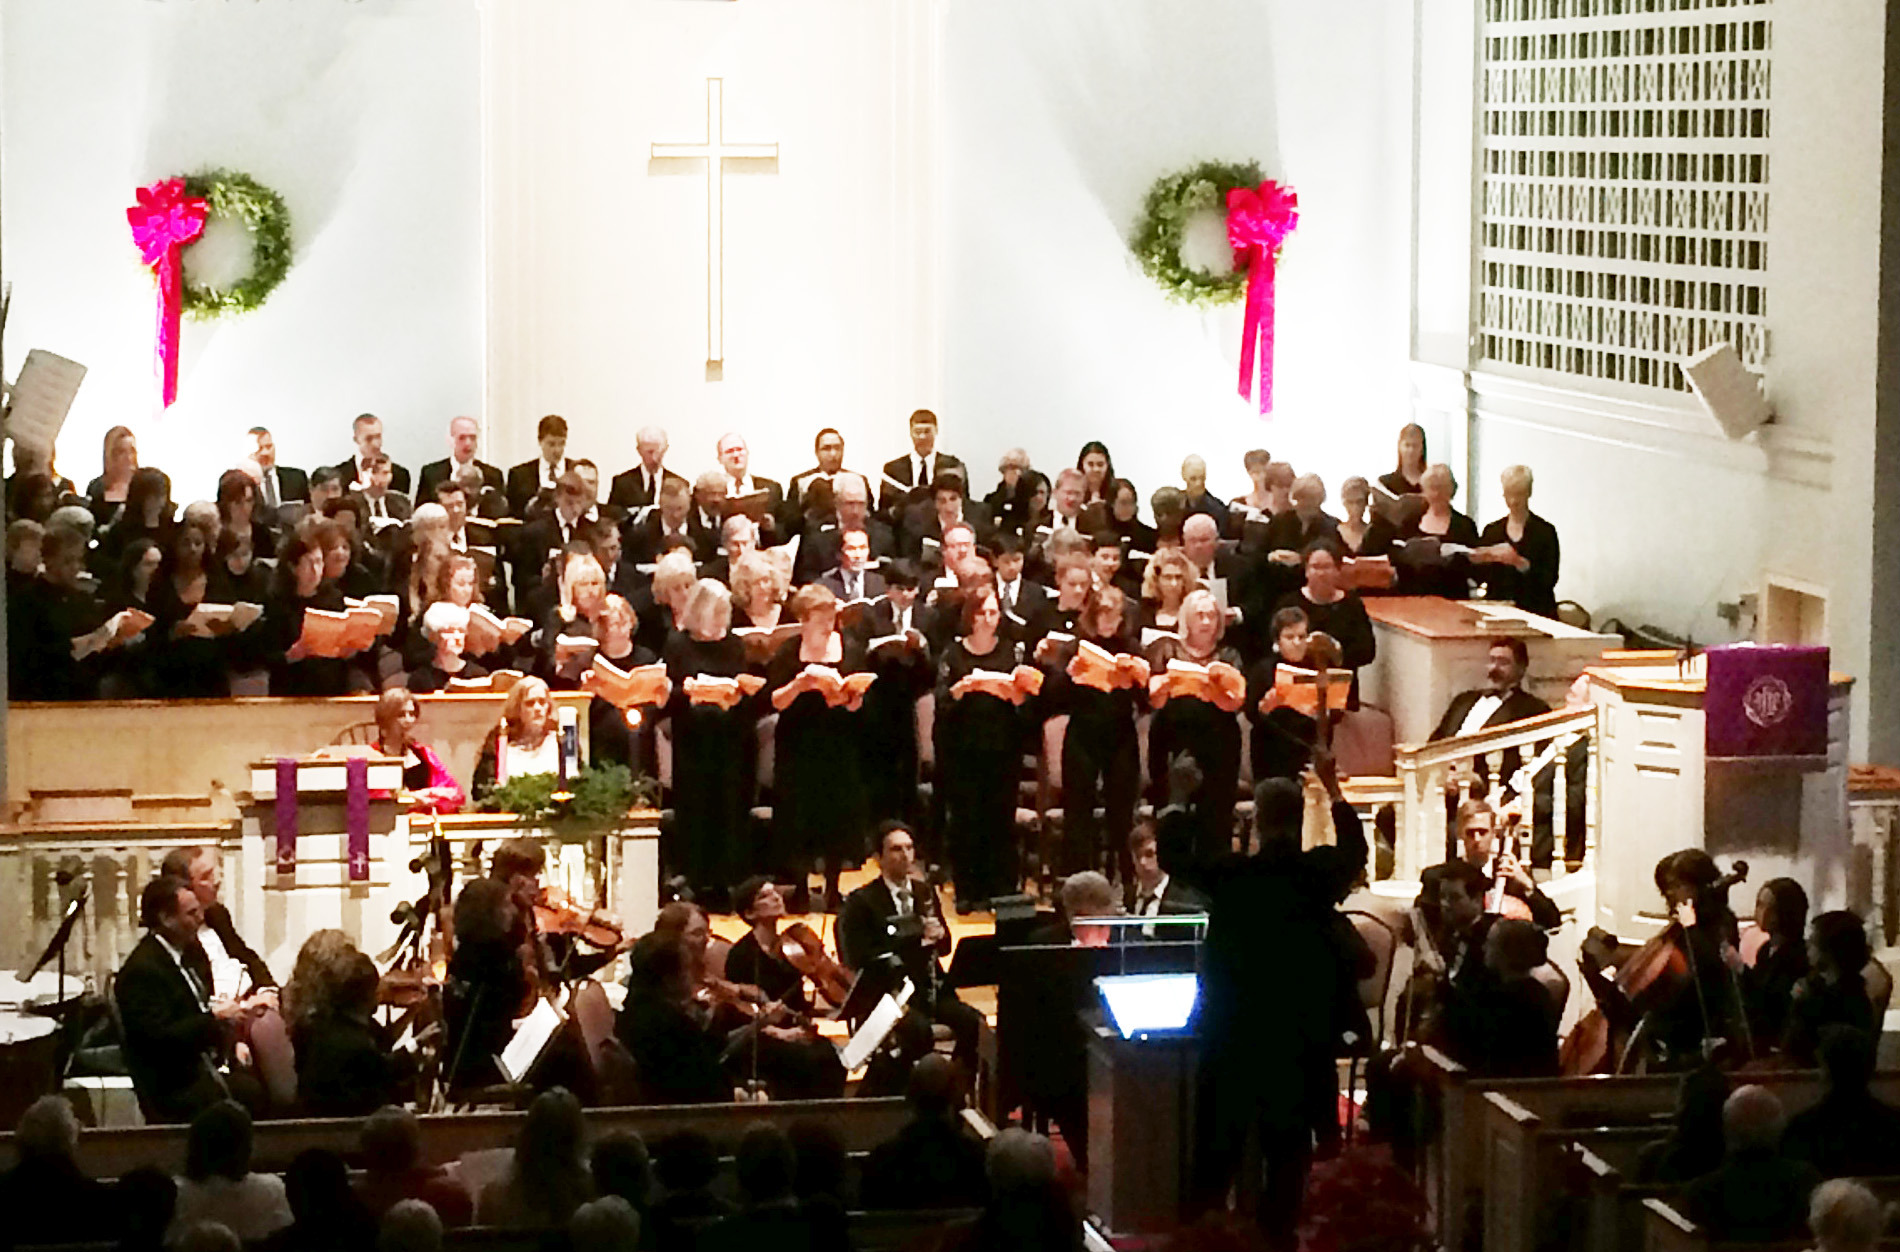 7d63bfeb379056d51a9d_Handel_s_Messiah_at_Fanwood_Presbyterian_2013.jpg